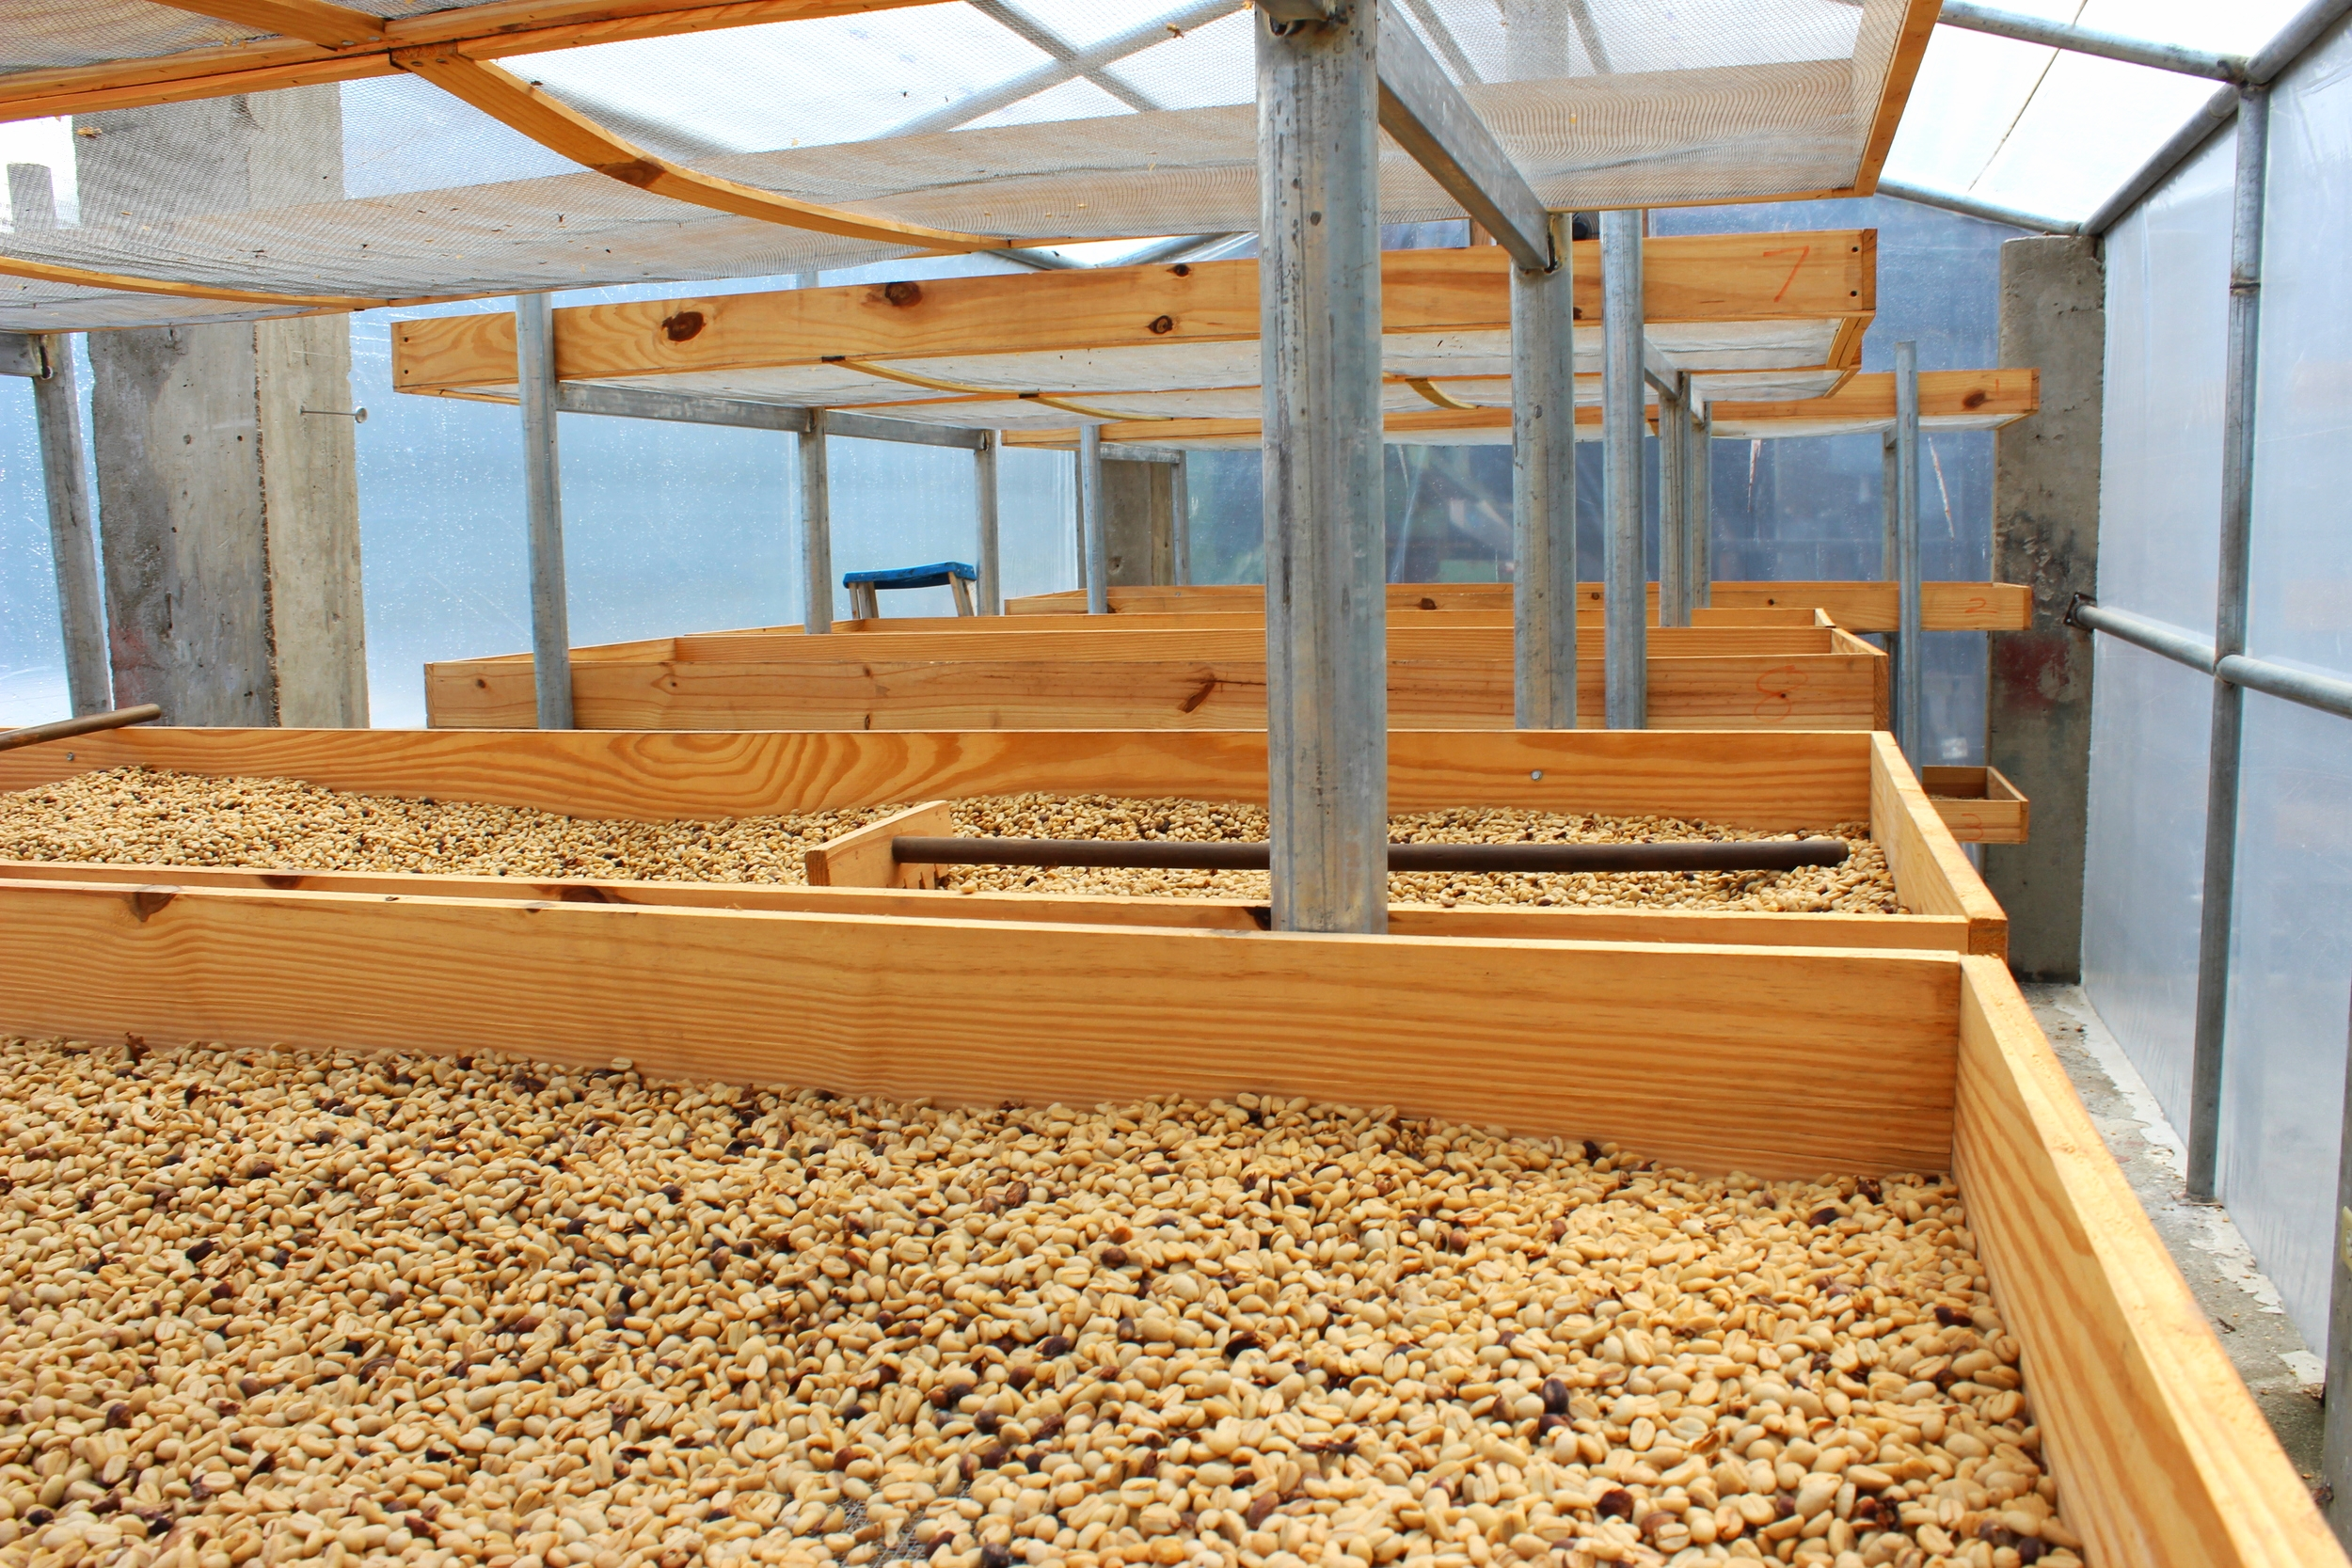 Raised drying beds for the Gourmet coffee.